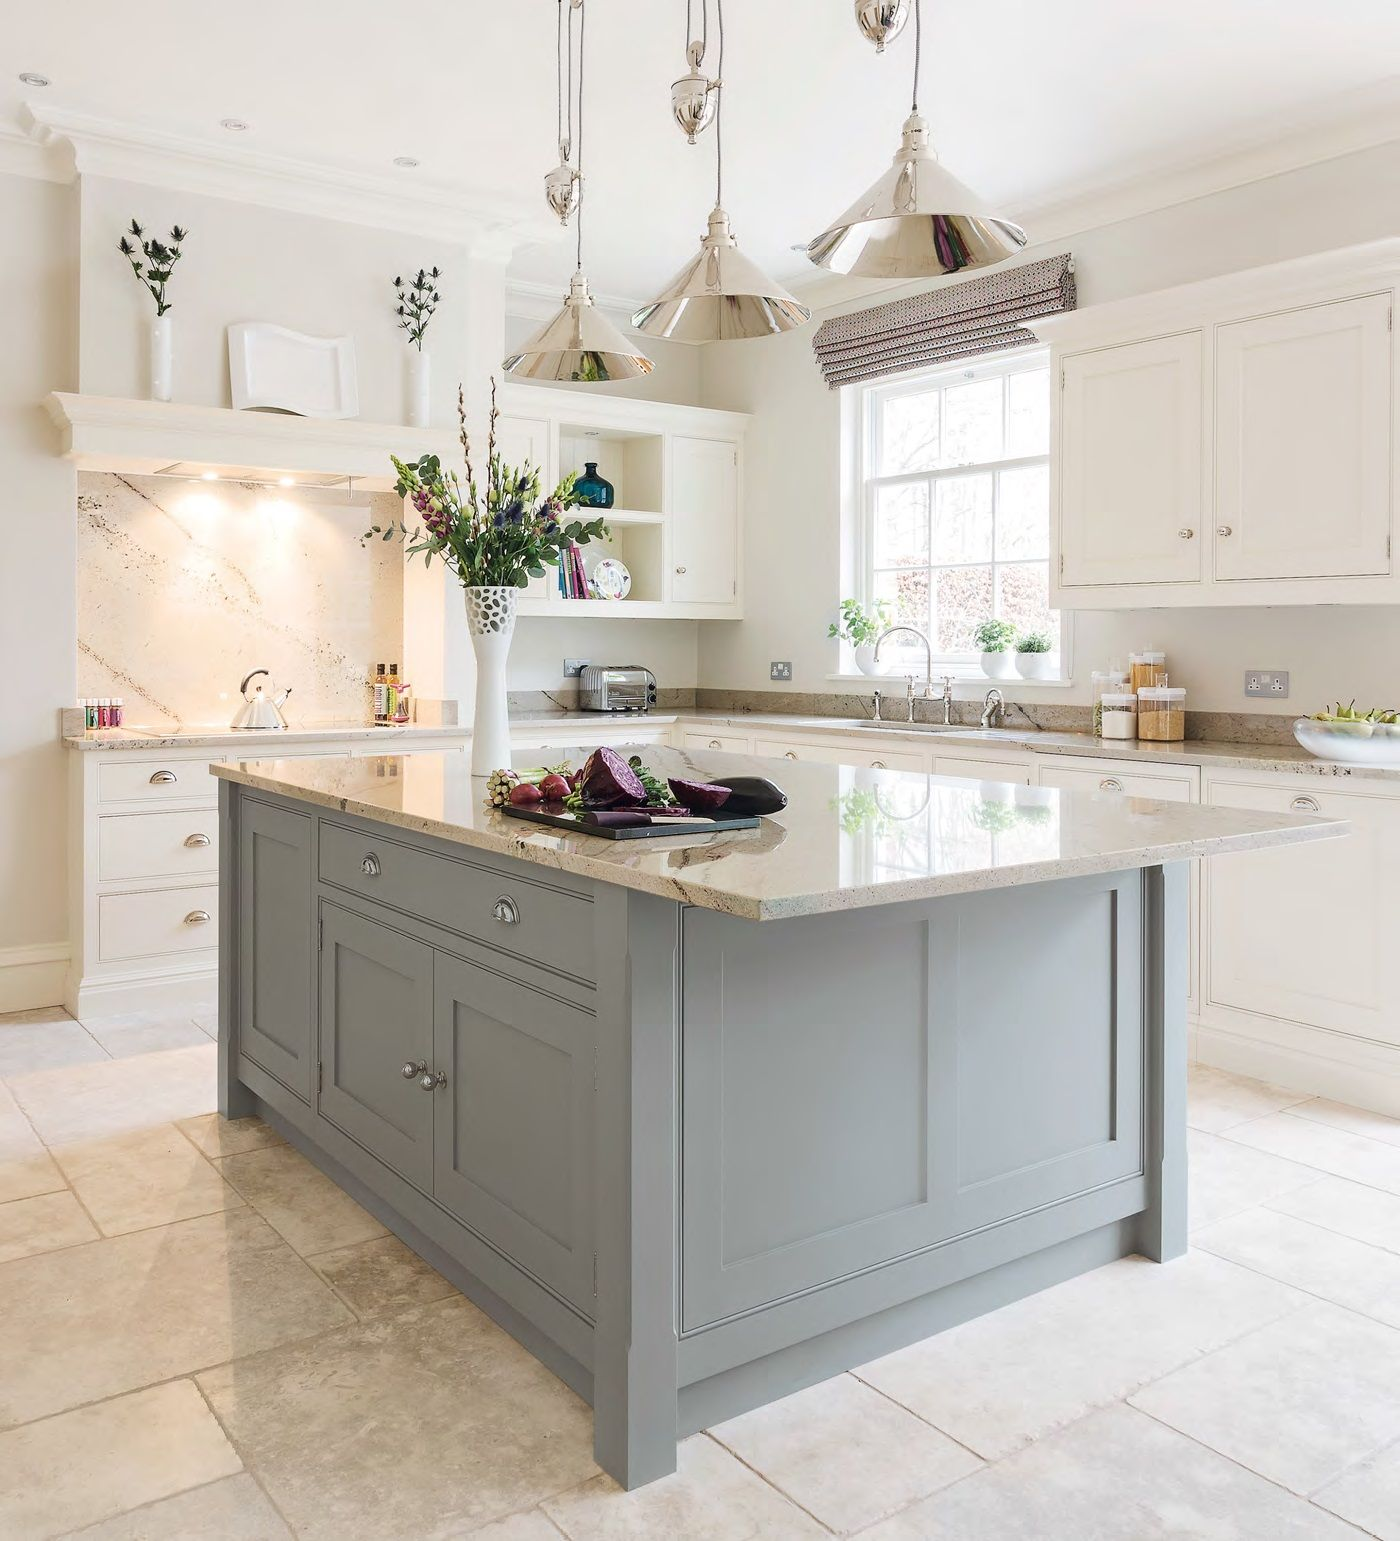 Kitchen Islands Uk Single Hole Faucet With Pull Out Spray Tom Howley S Classic Hartford Design Beautiful Kitchens January 2015